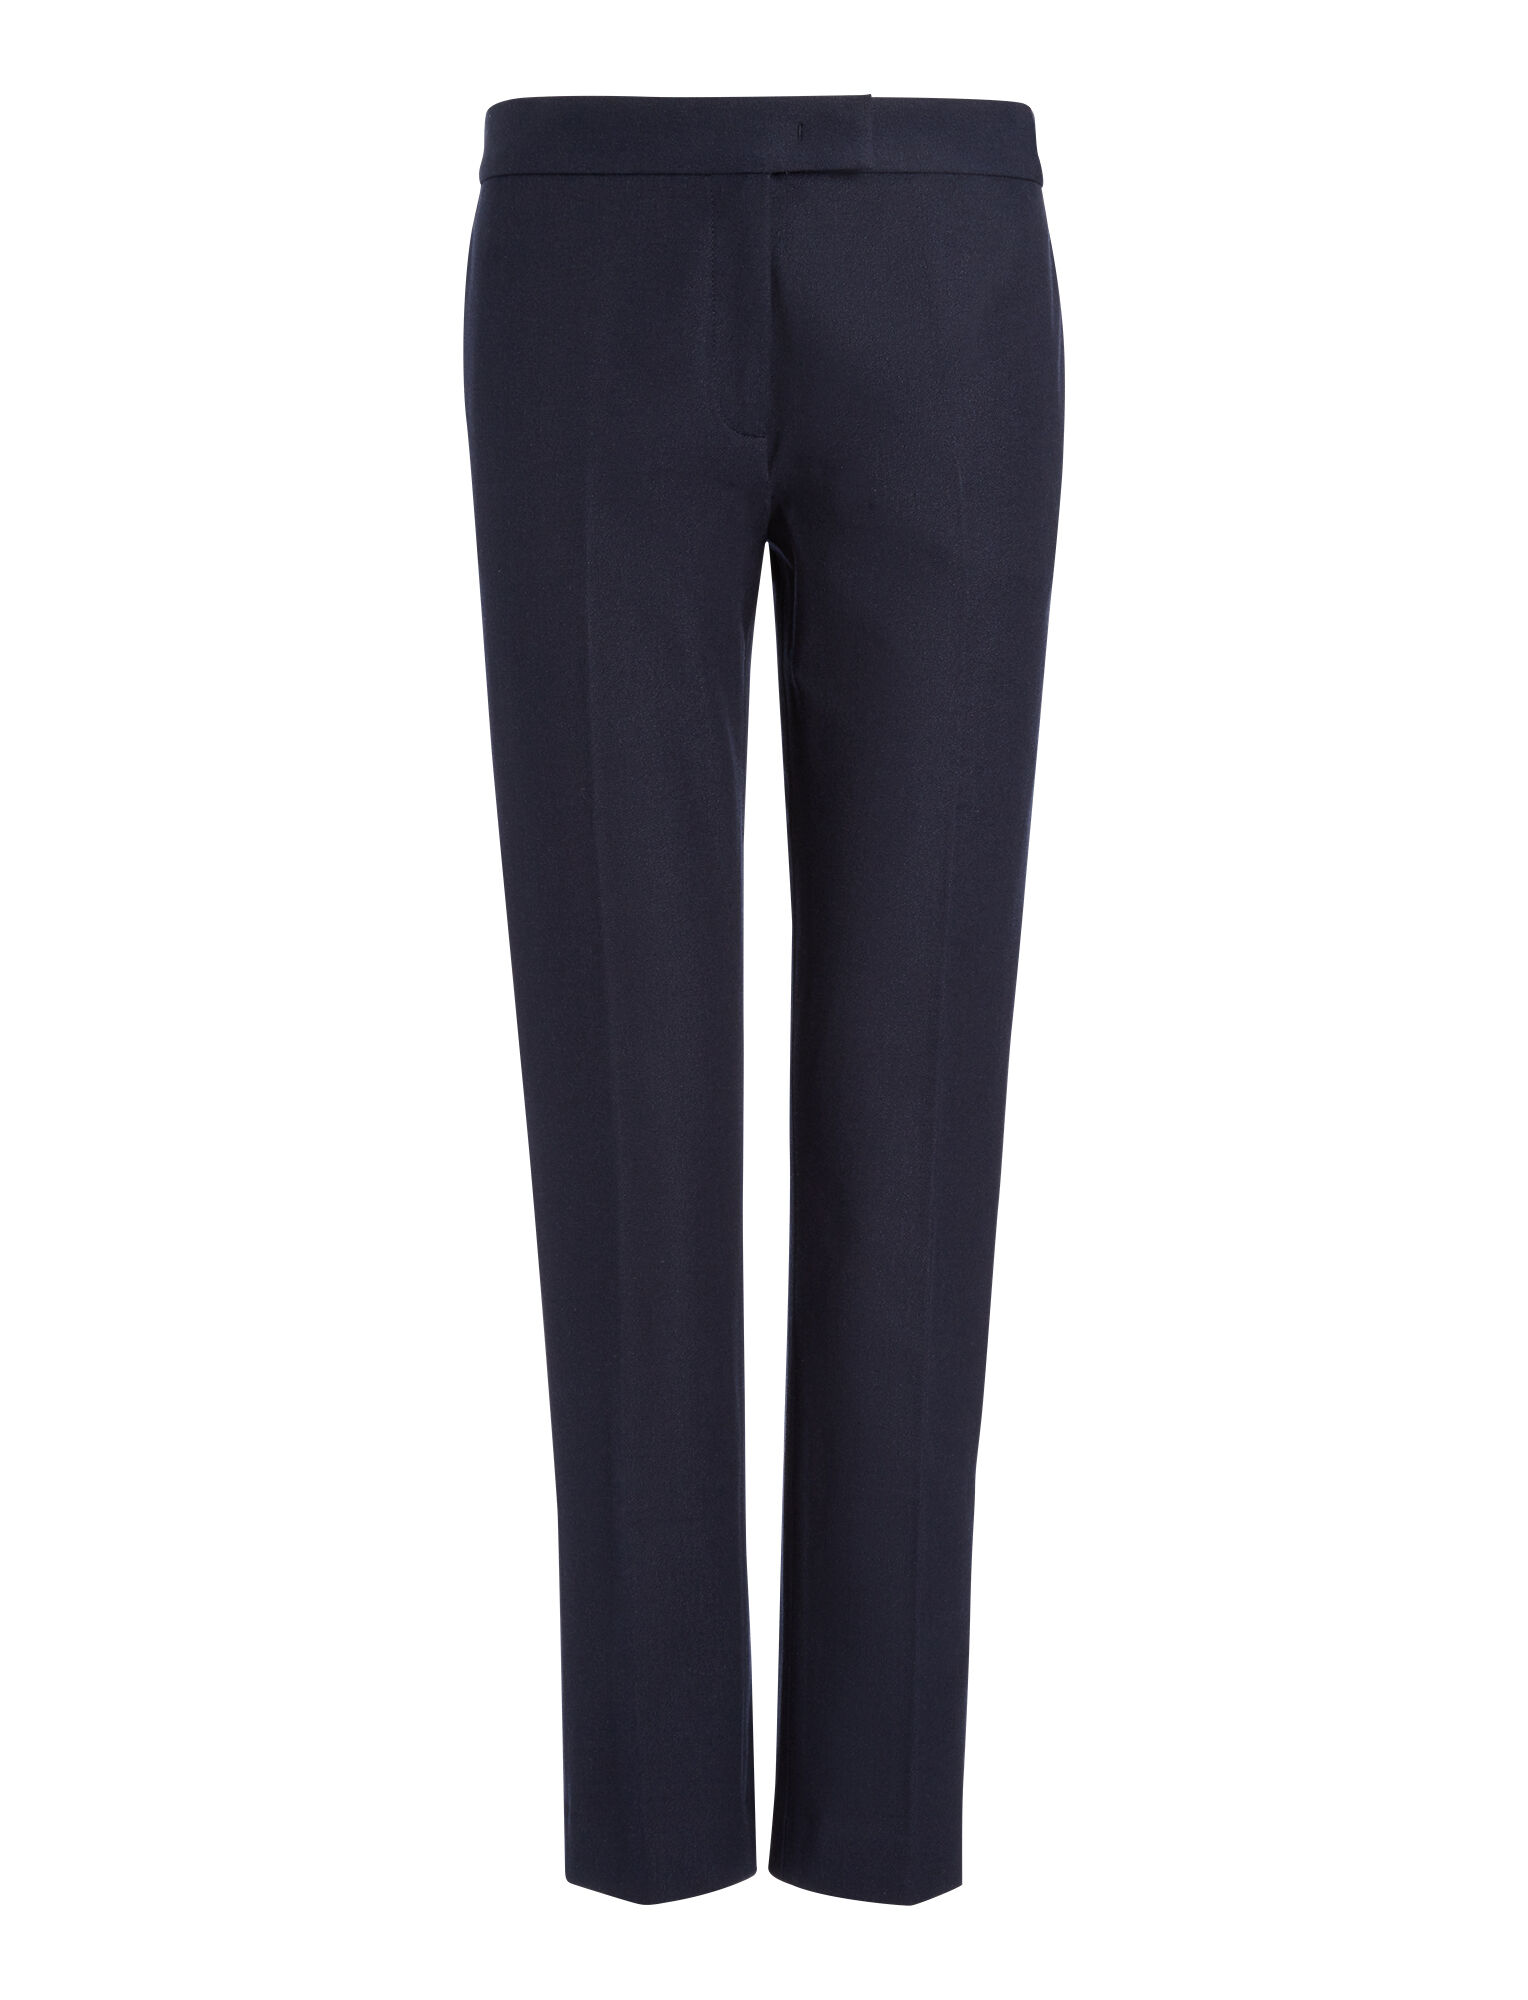 Joseph, Gabardine Stretch Finley Trousers, in NAVY